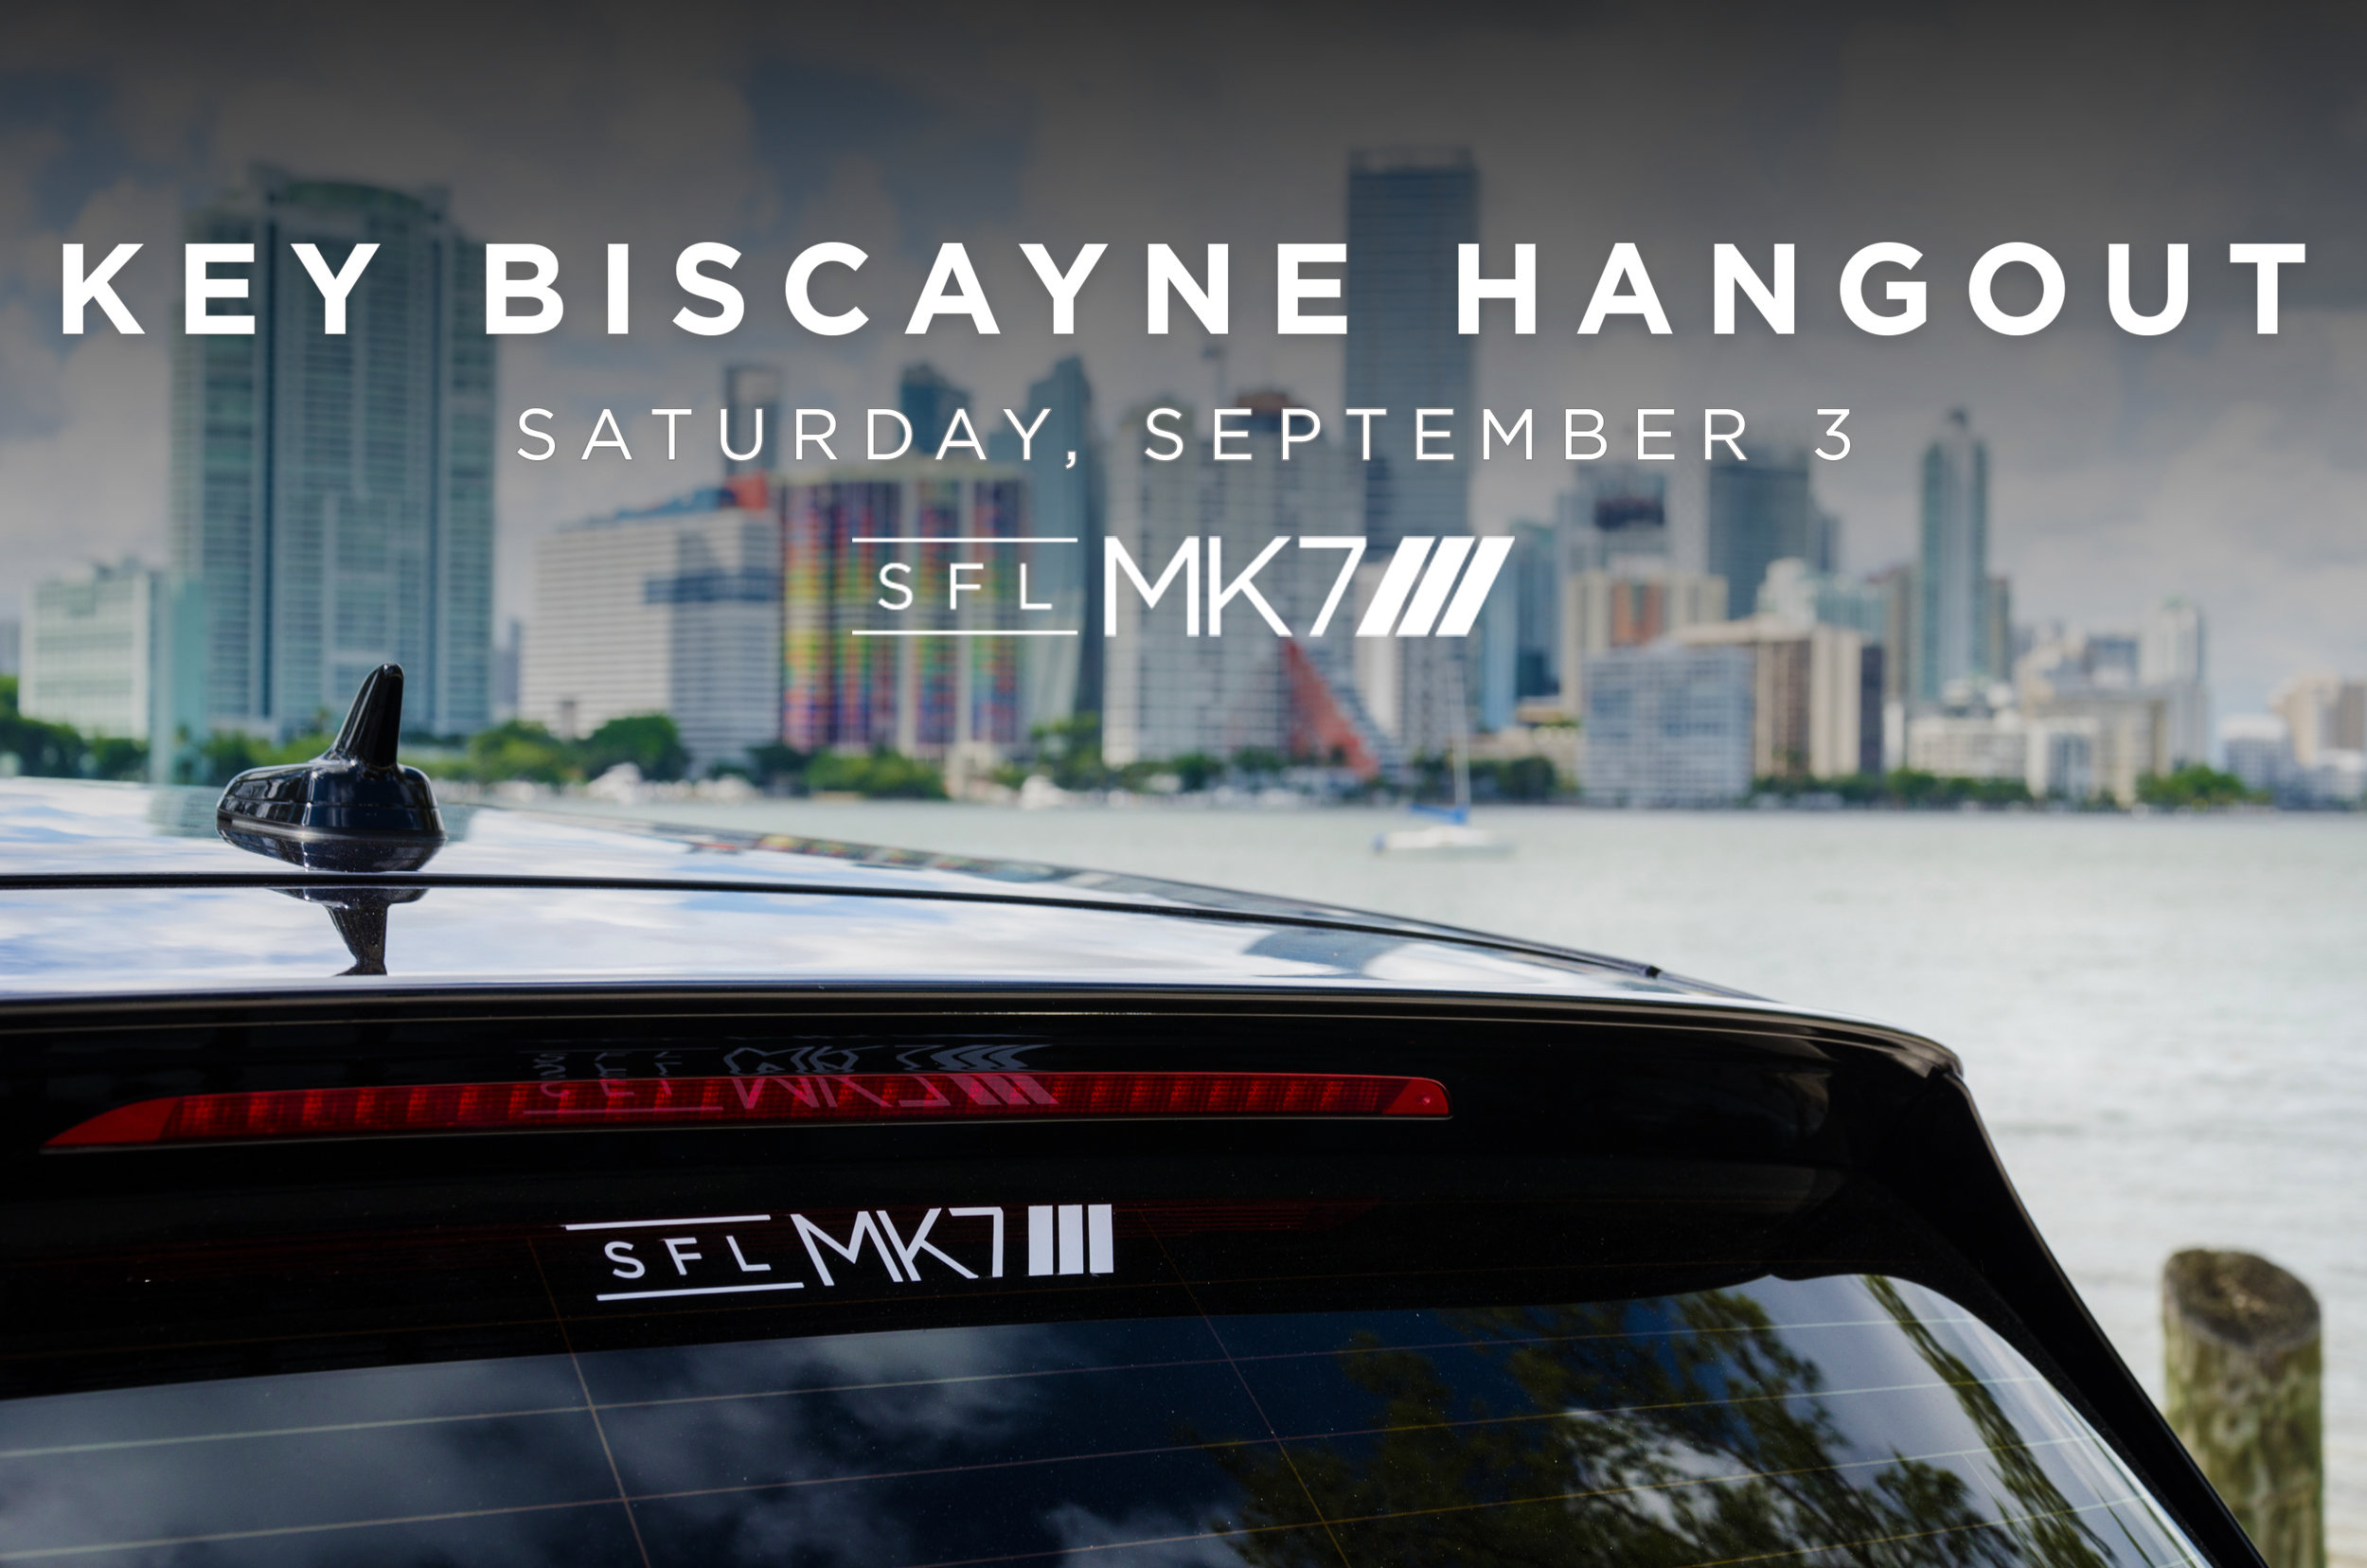 One of our SFL MK7 members has been kind enough to organize a meet and hangout at his restaurant on Key Biscayne: Whiskey Joe's.   Come out and enjoy some awesome cars, good food, and great people - all at the perfect spot right on Key Biscayne.